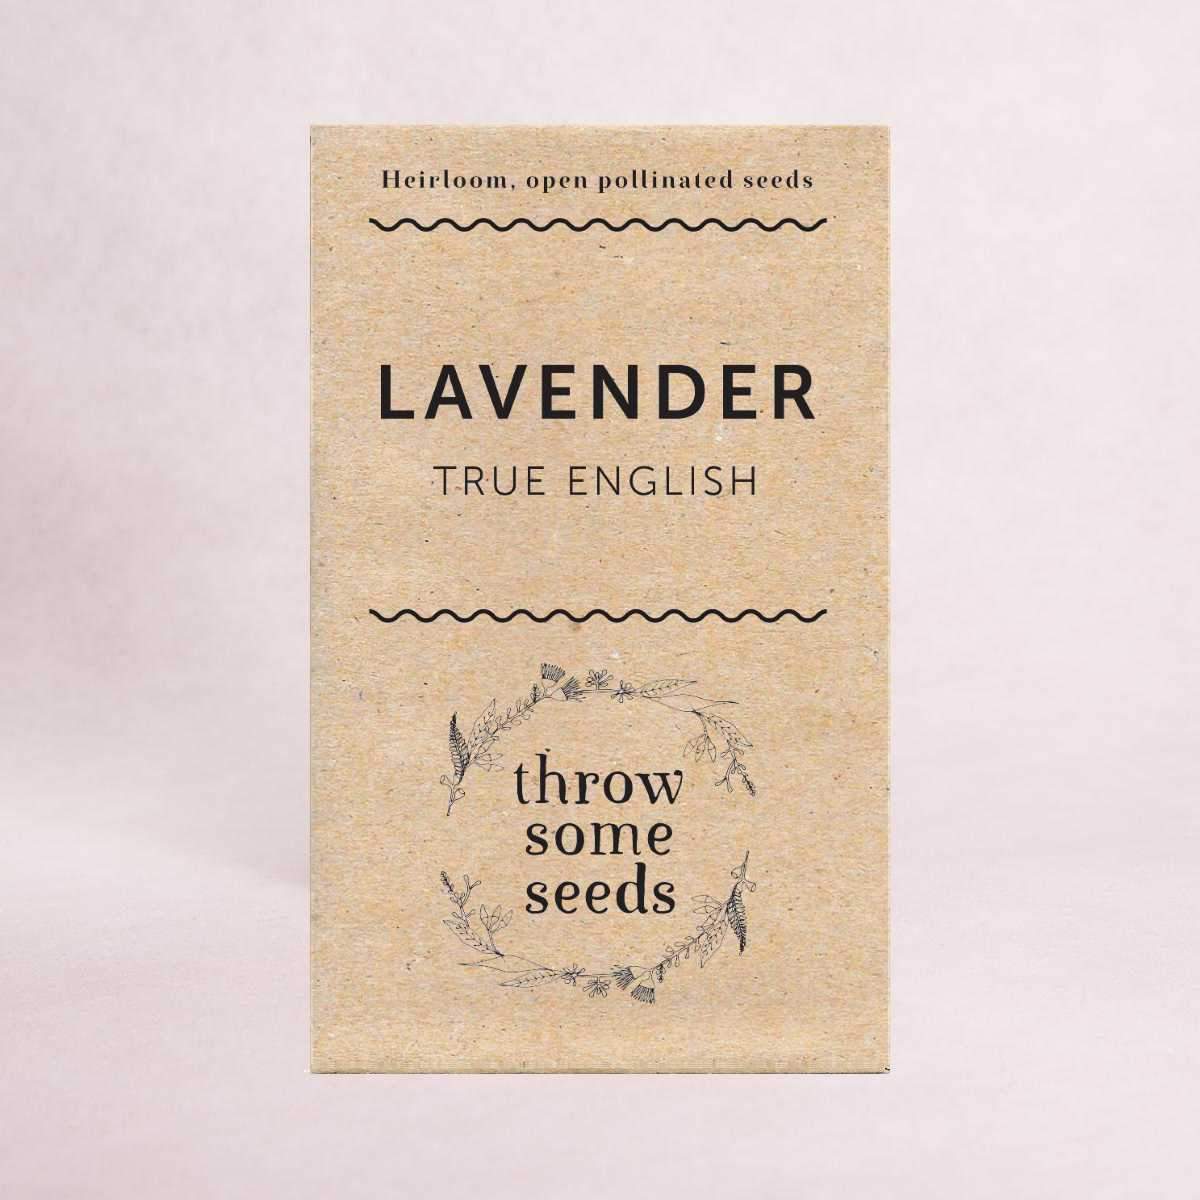 Lavender (True English) Seeds - Seeds - Throw Some Seeds - Australian gardening gifts and eco products online!